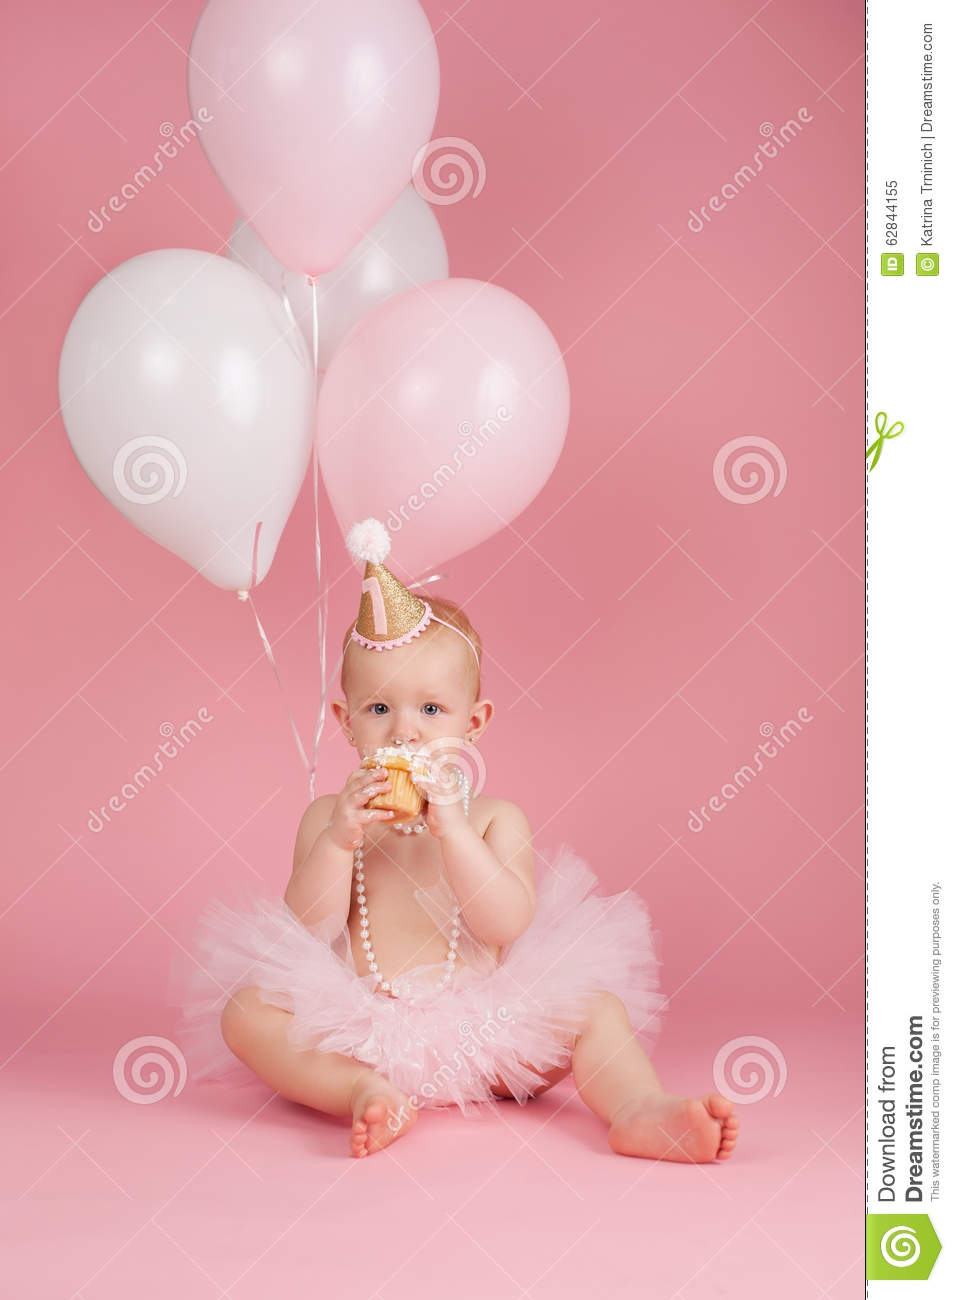 A Portrait Of One Year Old Baby Girl Wearing Pink Tutu String Pearls And Birthday Hat She Is Sitting Eating Cupcake On